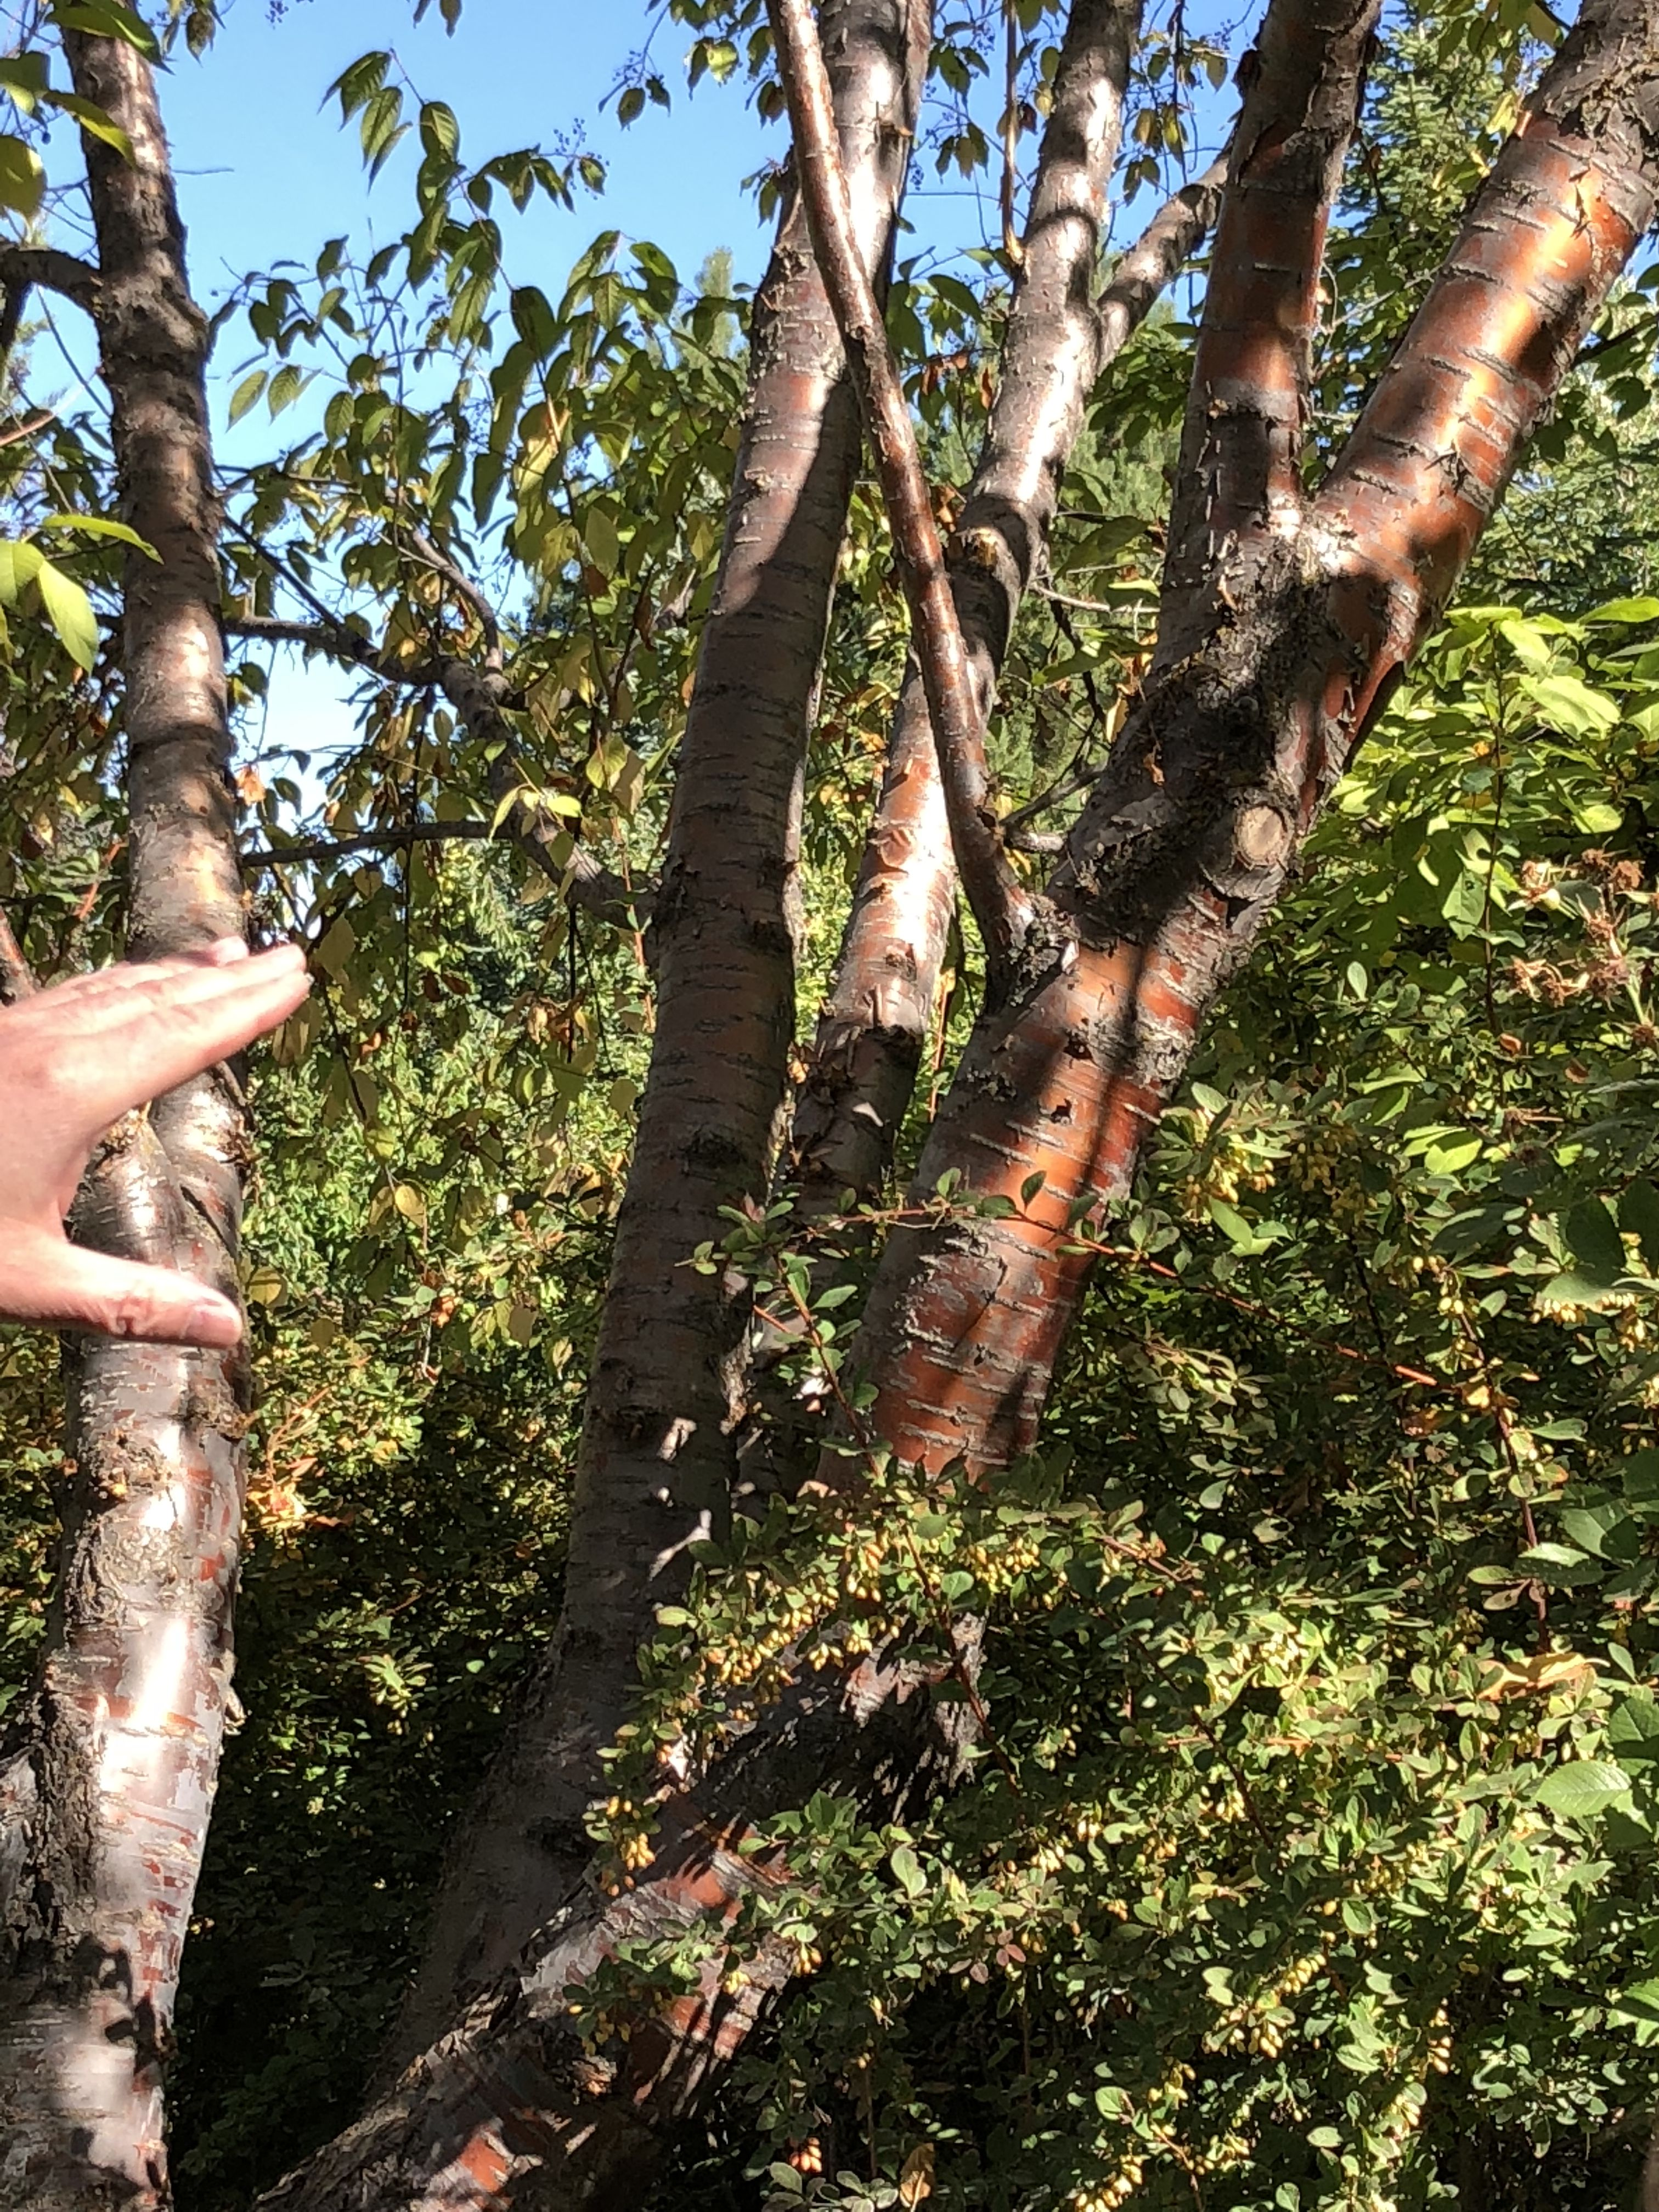 Prunus Maackii Or Amur Chokecherry Zone 3 This Tree Is 20 30 Feet High And 20 Feet Wide At Maturity This Tree Has A Great Winter Bar Tree Cherry Tree Plants